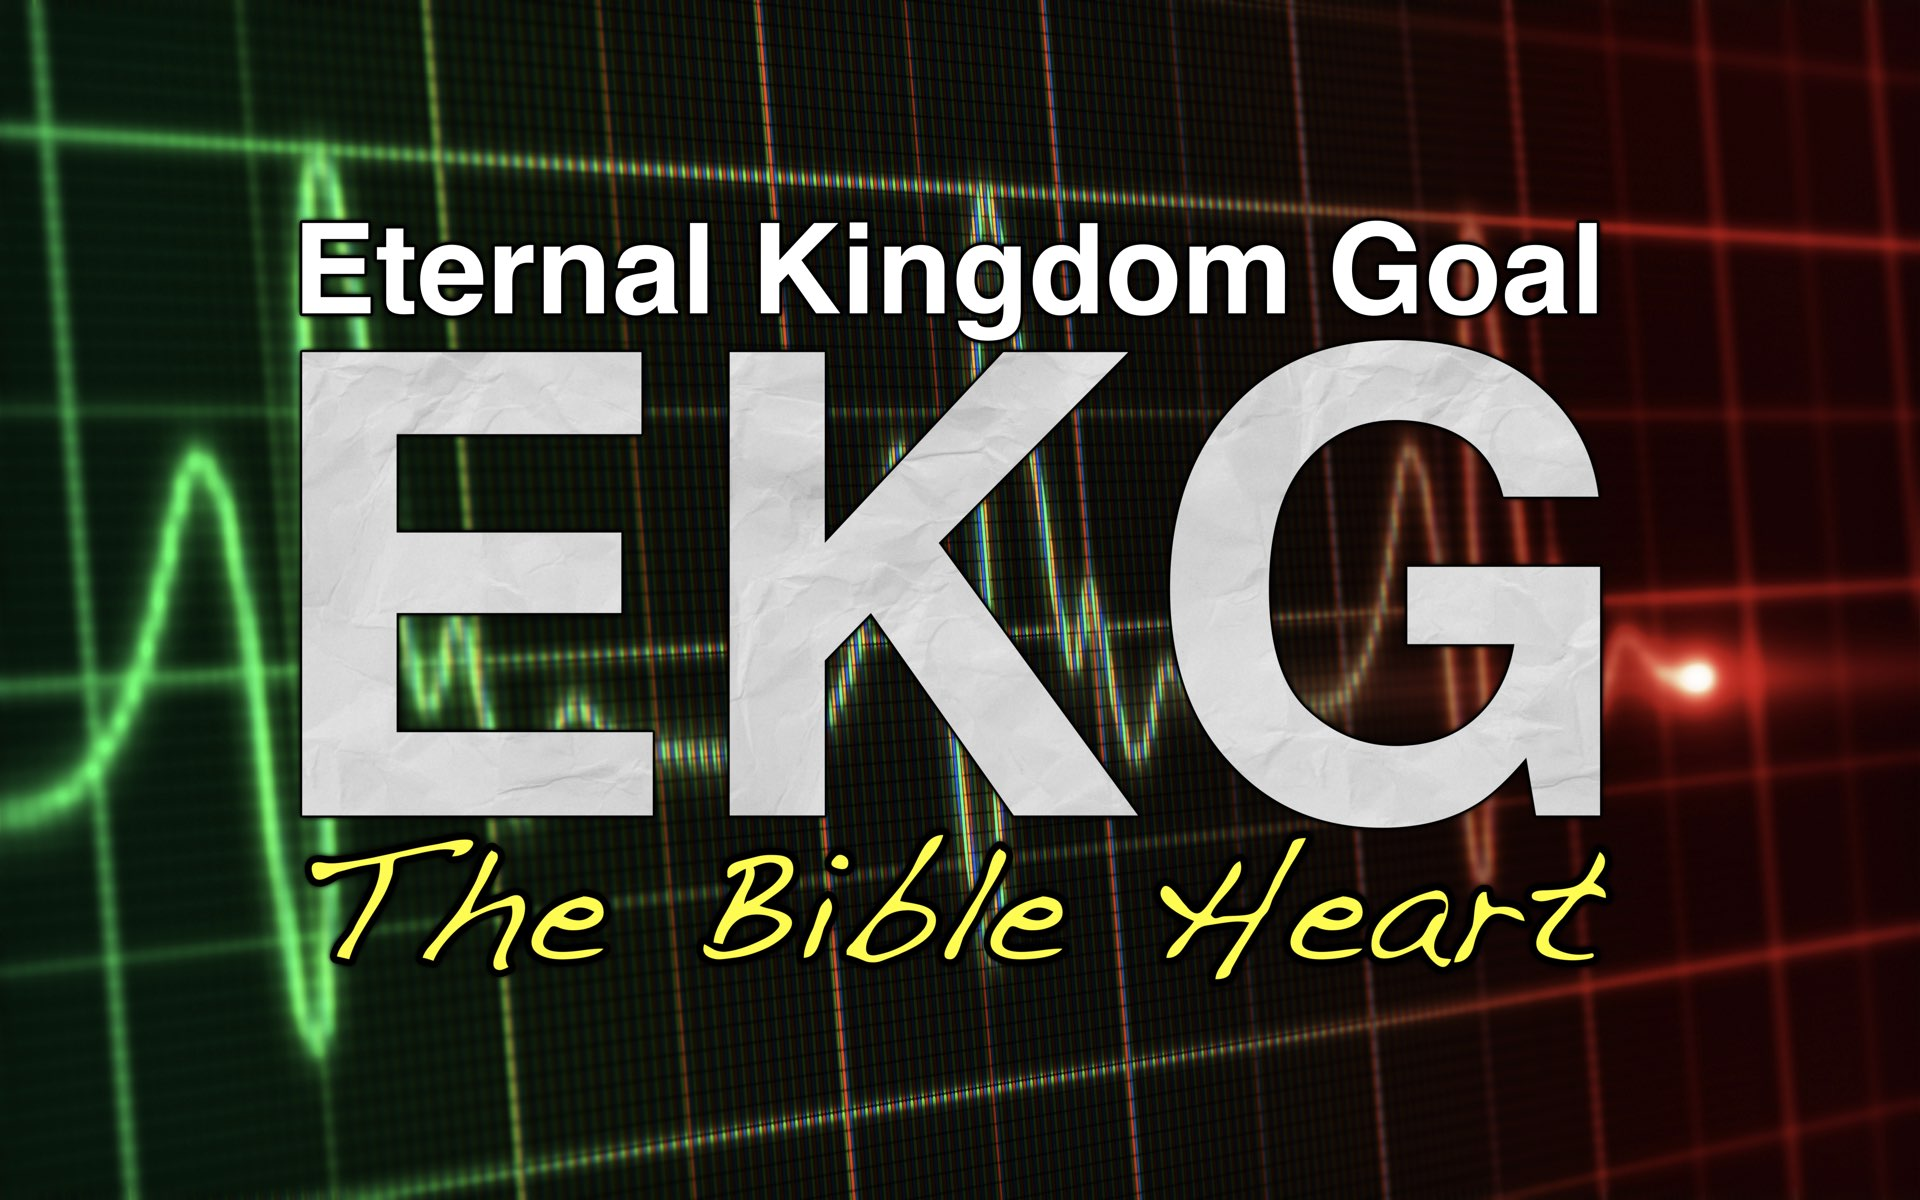 The Heart and Eternal Kingdom Goals